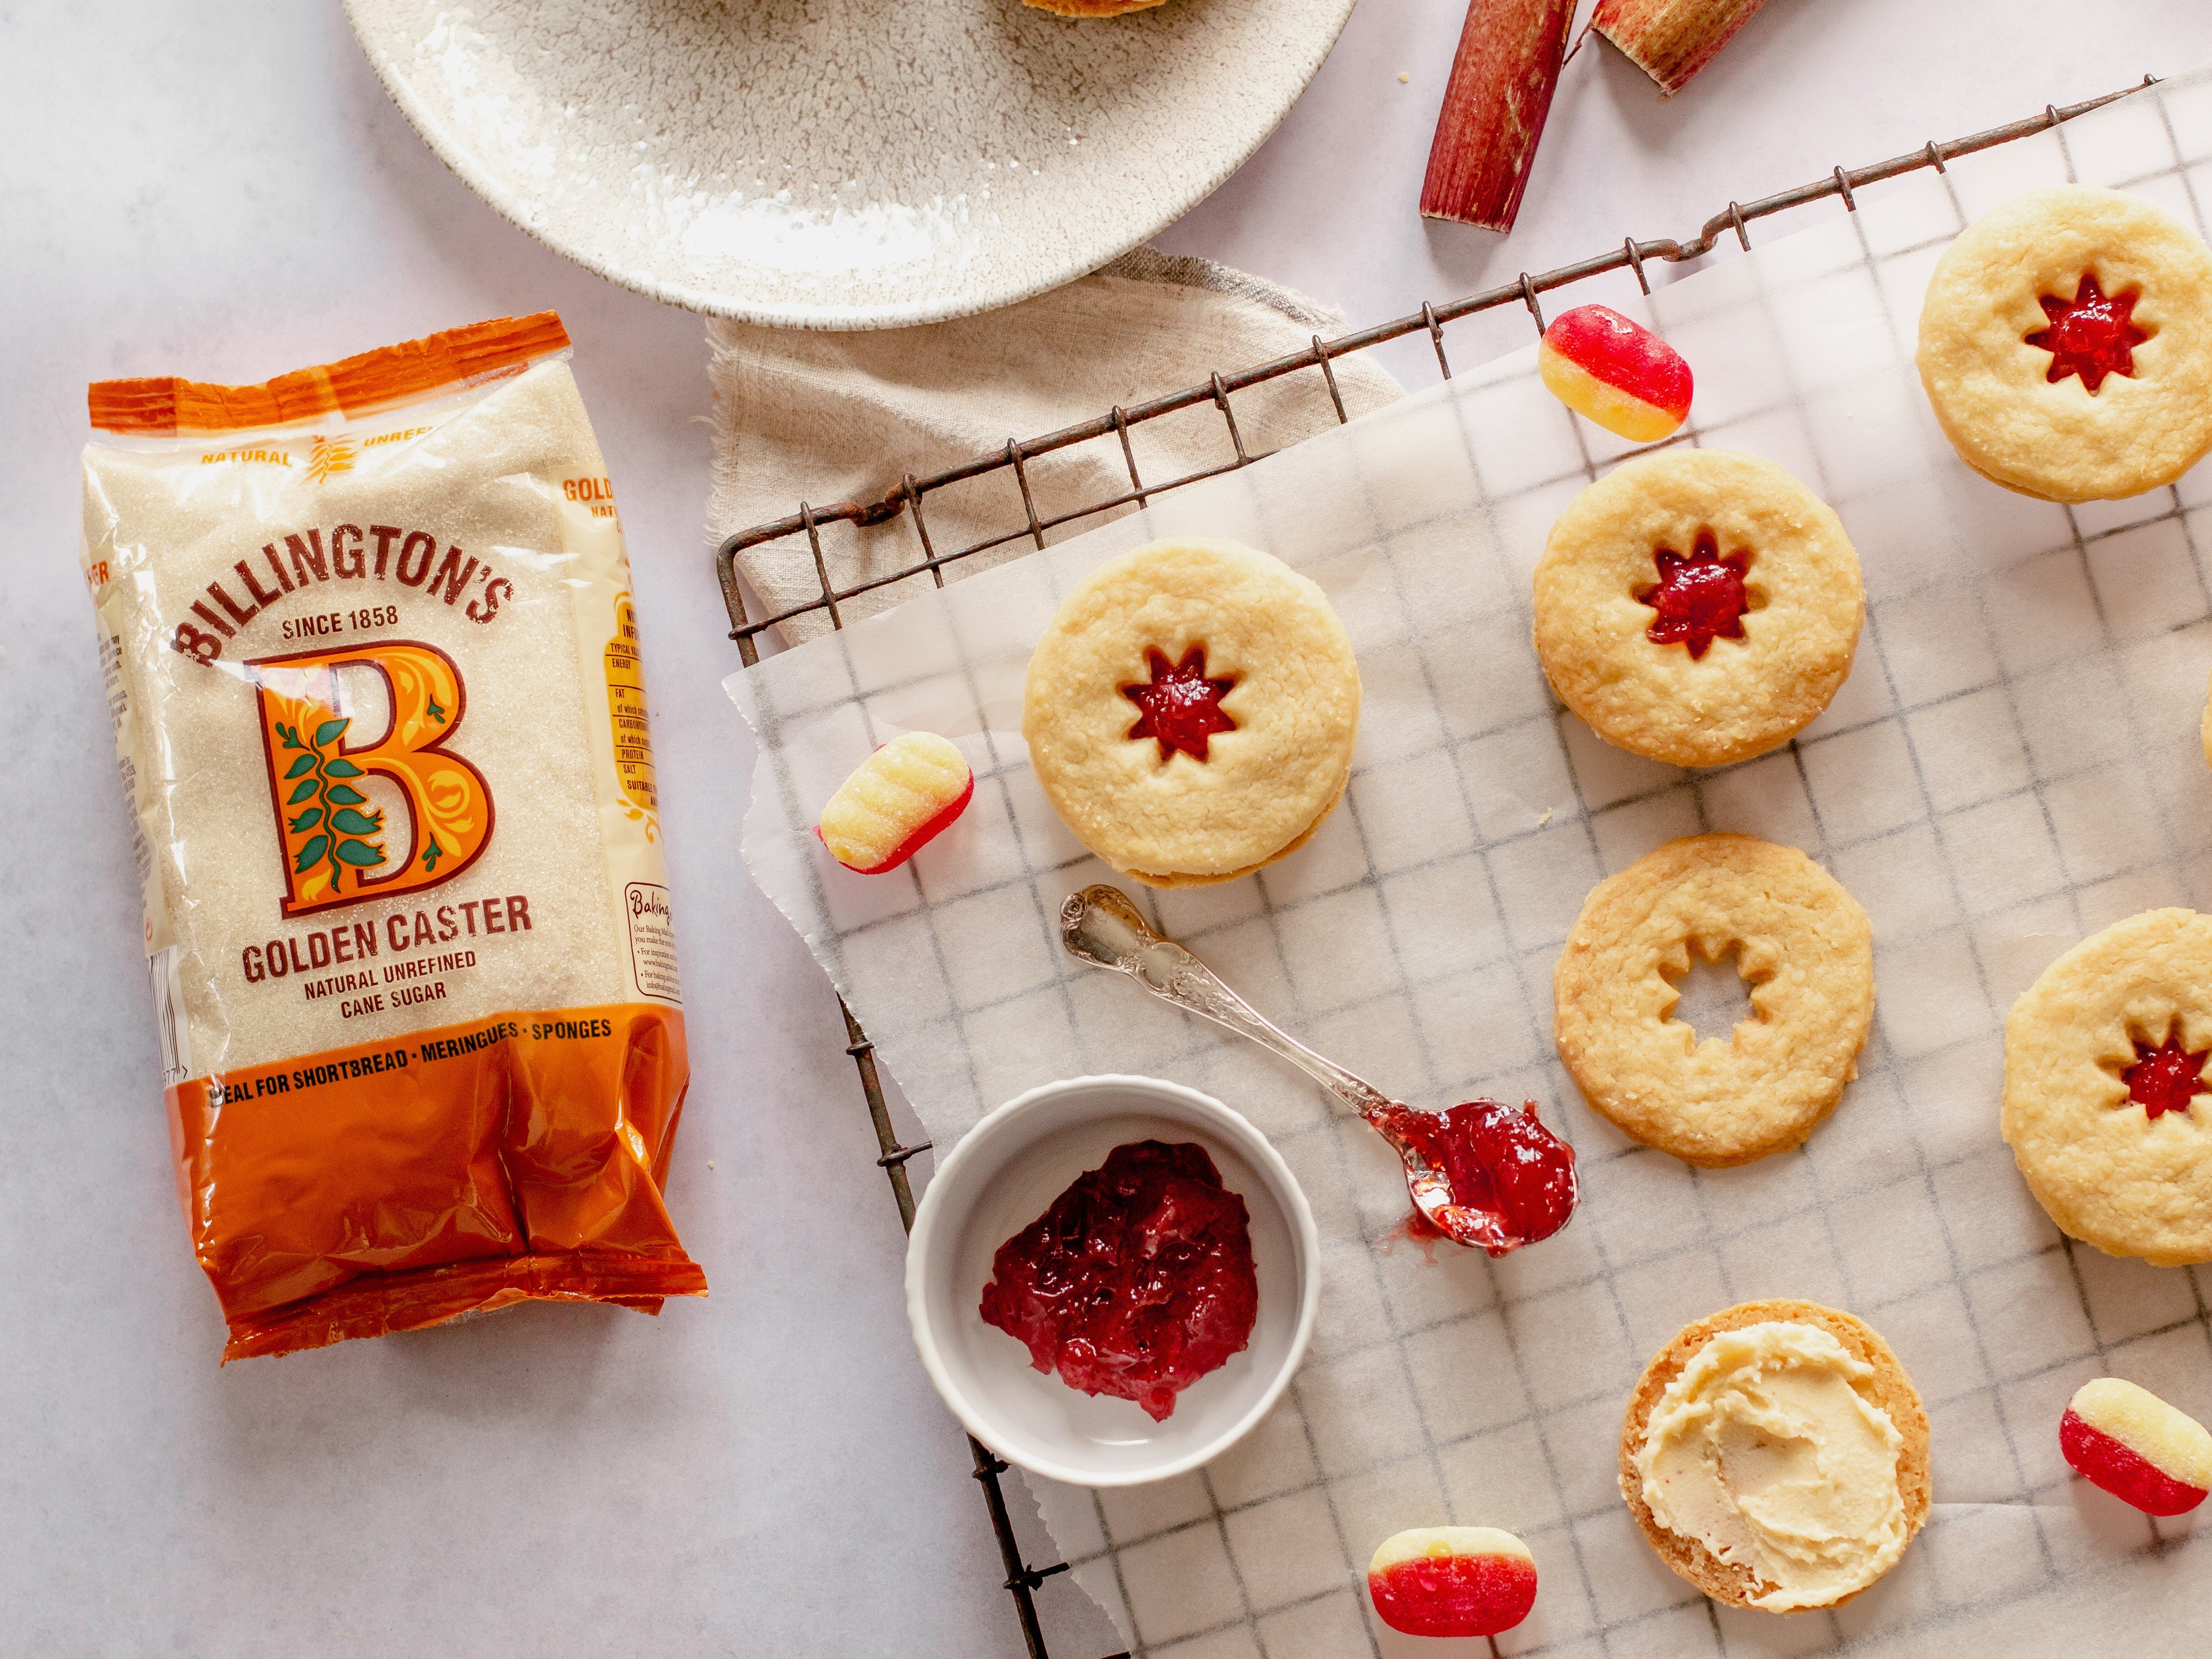 Overhead shot of jammy dodger biscuits being assembled. Sweets, jam in bowl and jammy spoon. Sugar pack in shot